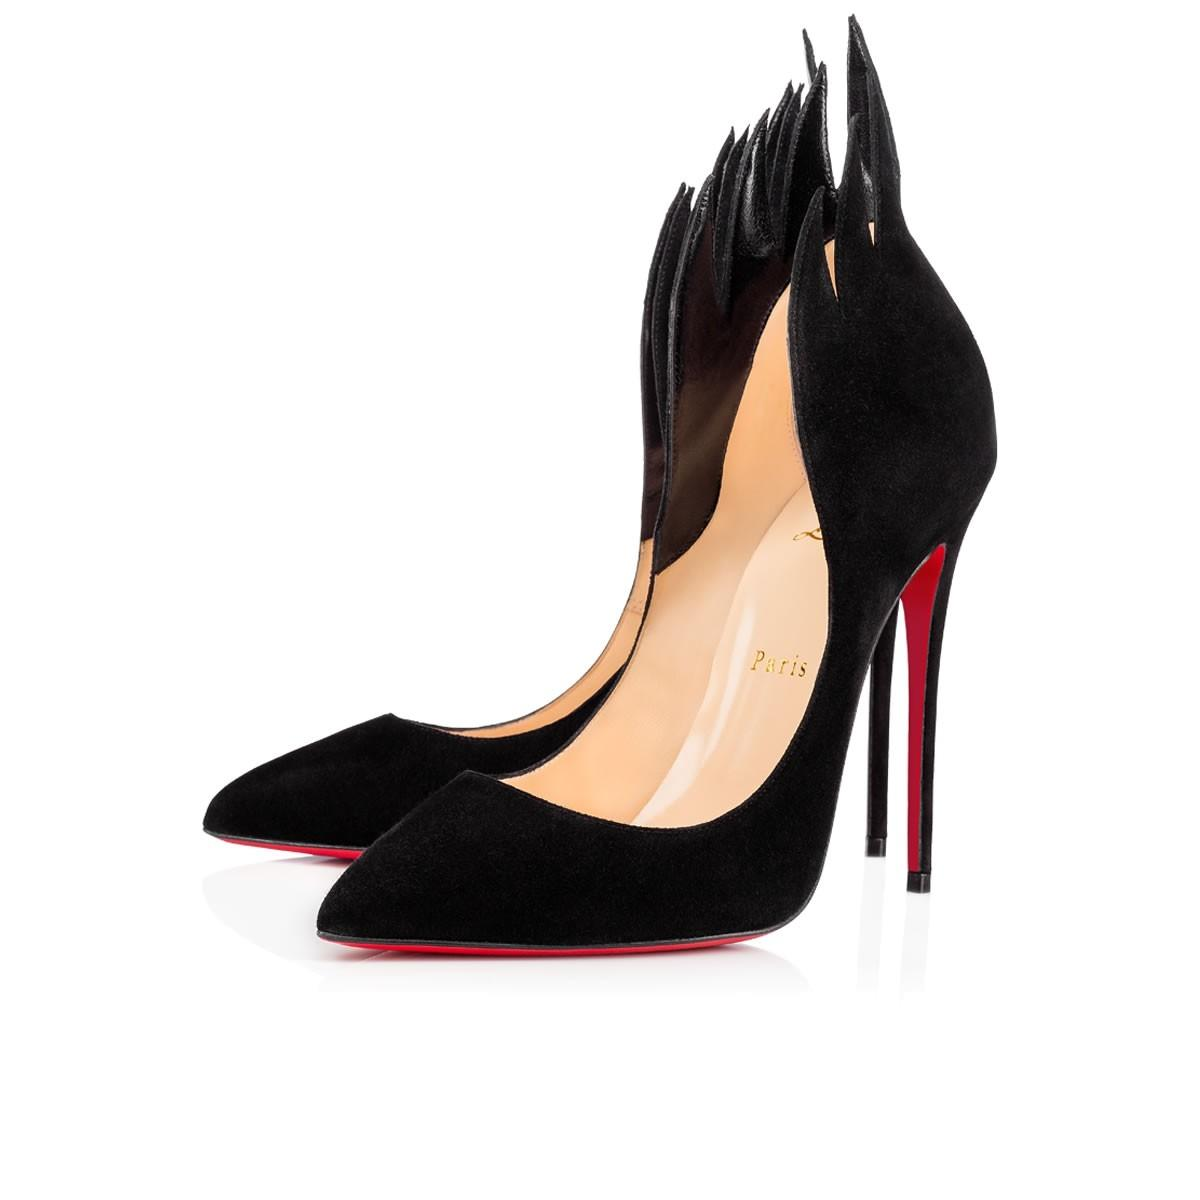 Christian Louboutin Black Classic Victorina 100mm Flame Suede Leather Carmin Point-toe Pumps Size EU 36 (Approx. US 6) Regular (M, B)